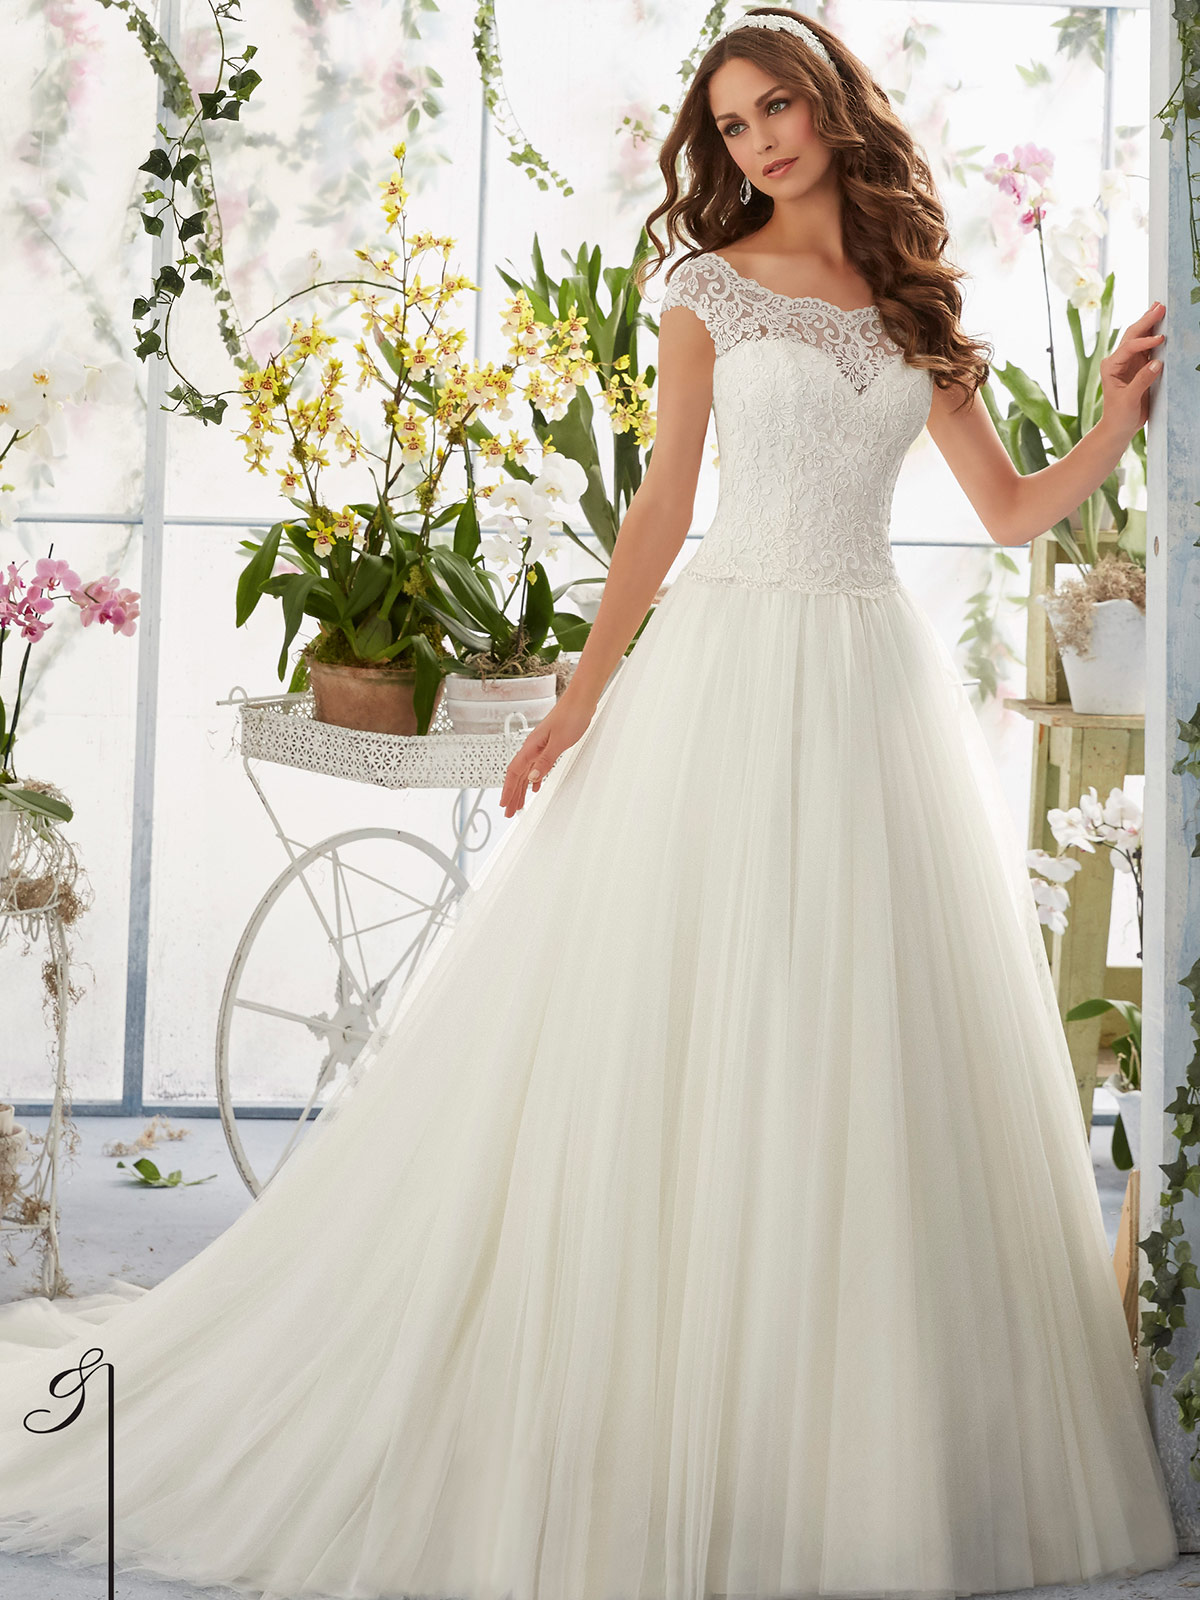 Mori Lee Blu 5403 Cap Sleeves Ball Gown Bridal Dress